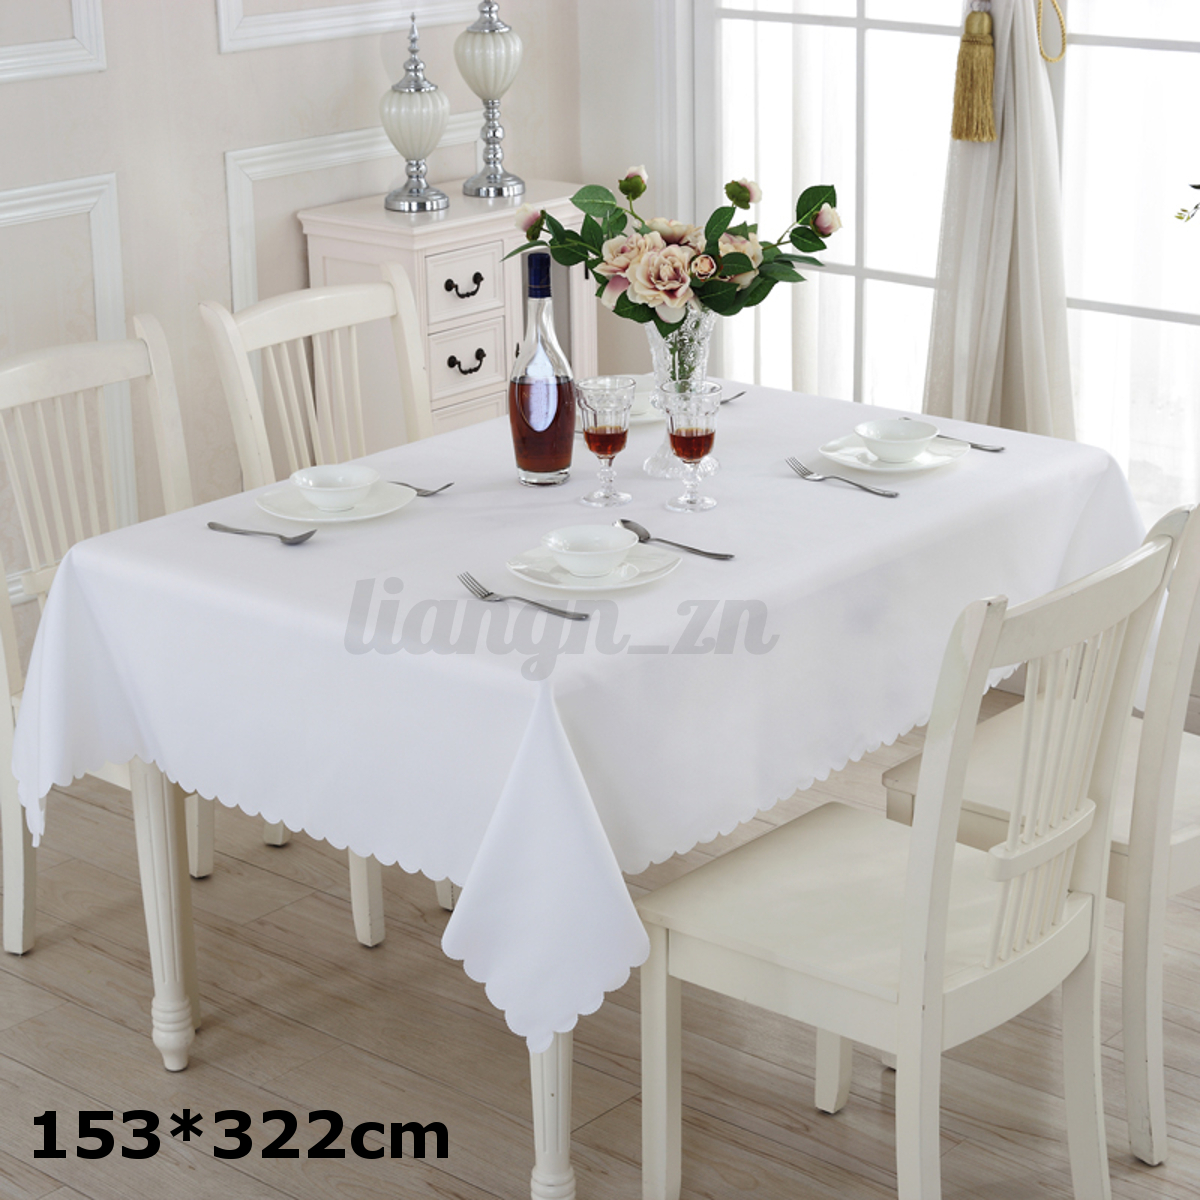 rectangulaire nappe blanche de table mariage d coration c r monie banquet f te ebay. Black Bedroom Furniture Sets. Home Design Ideas